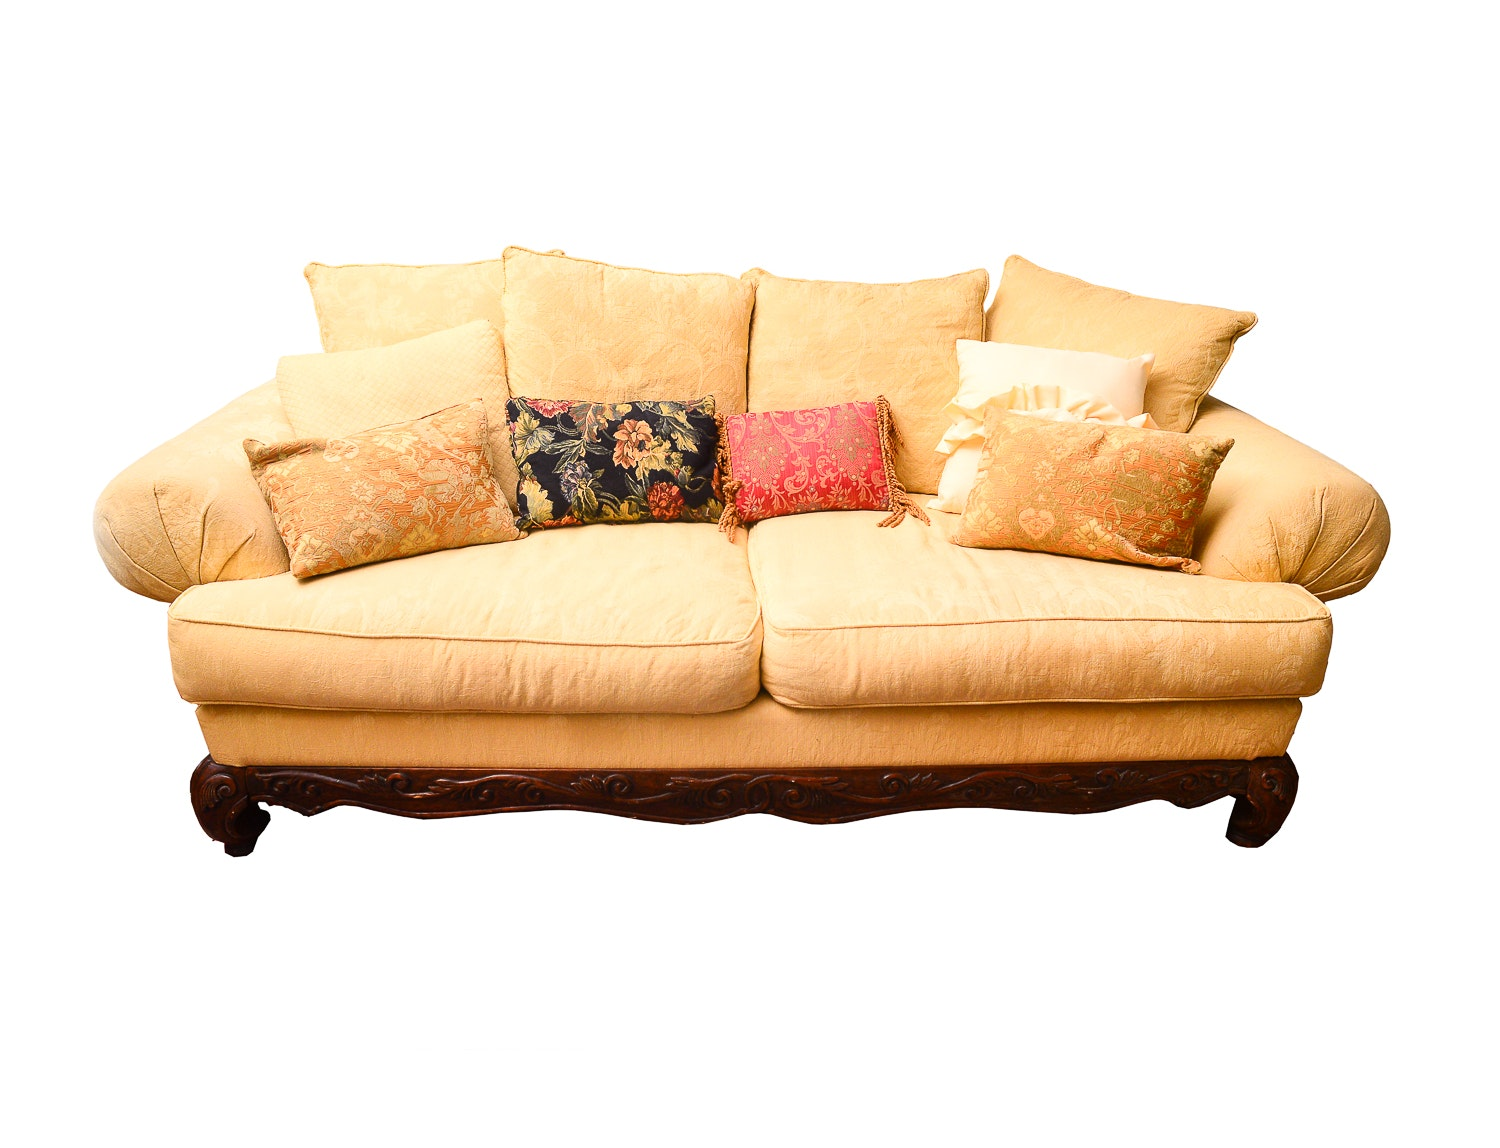 vintage sofas antique settees retro loveseats and